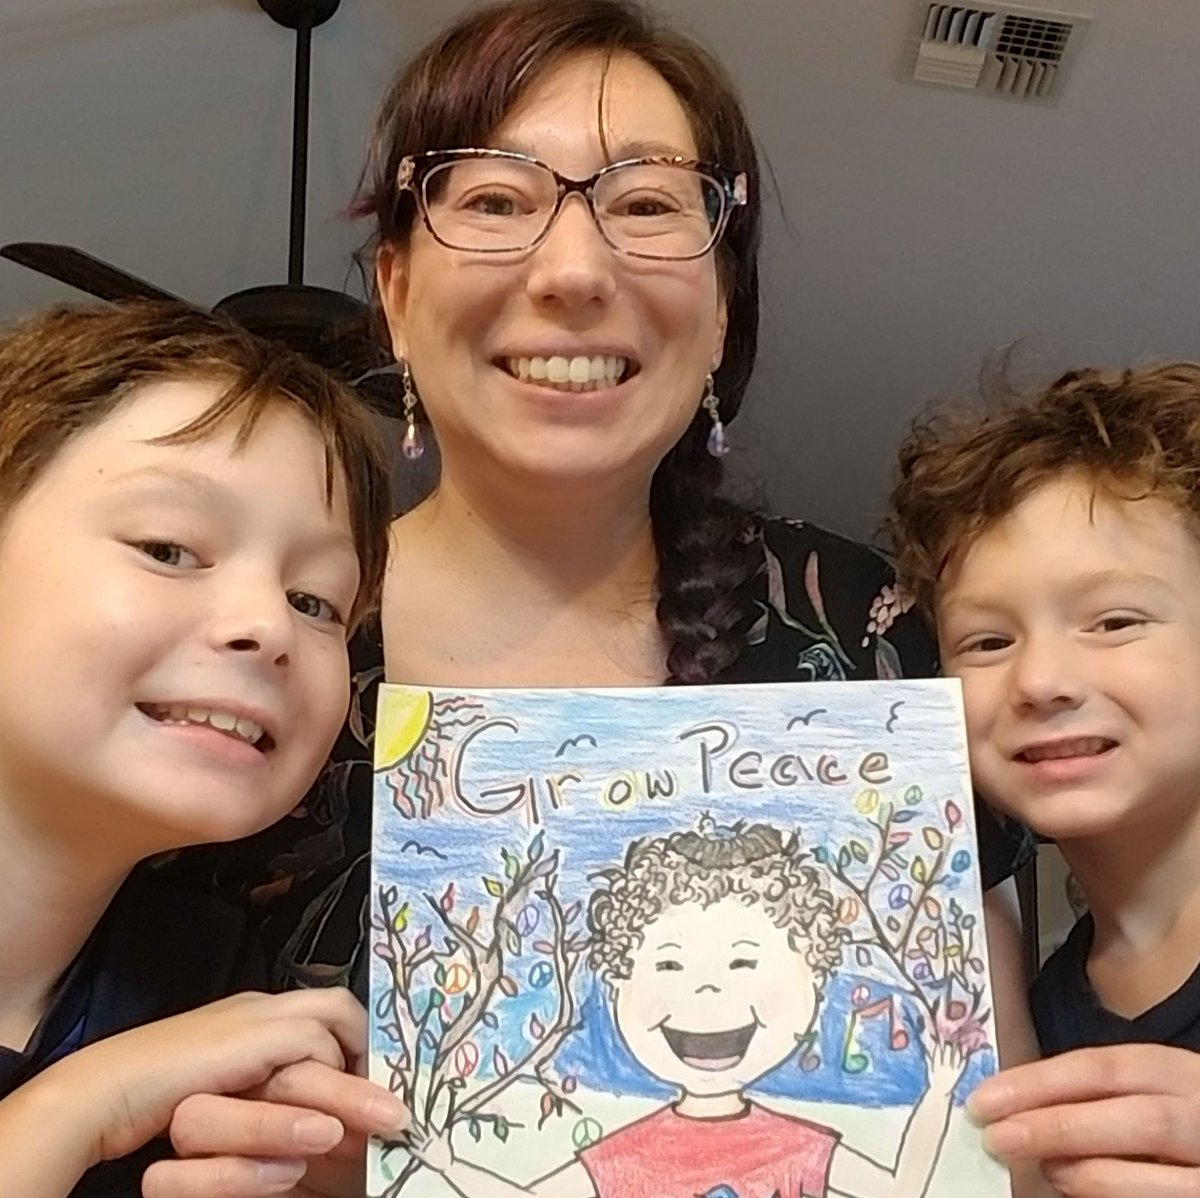 test Twitter Media - How does your family grow peace? The Lions Peace Poster Project encourages children and adults of all ages to share their vision of peace using the hashtag #PeacePoster on social media. ☮️🎨 https://t.co/XBvivTFmML